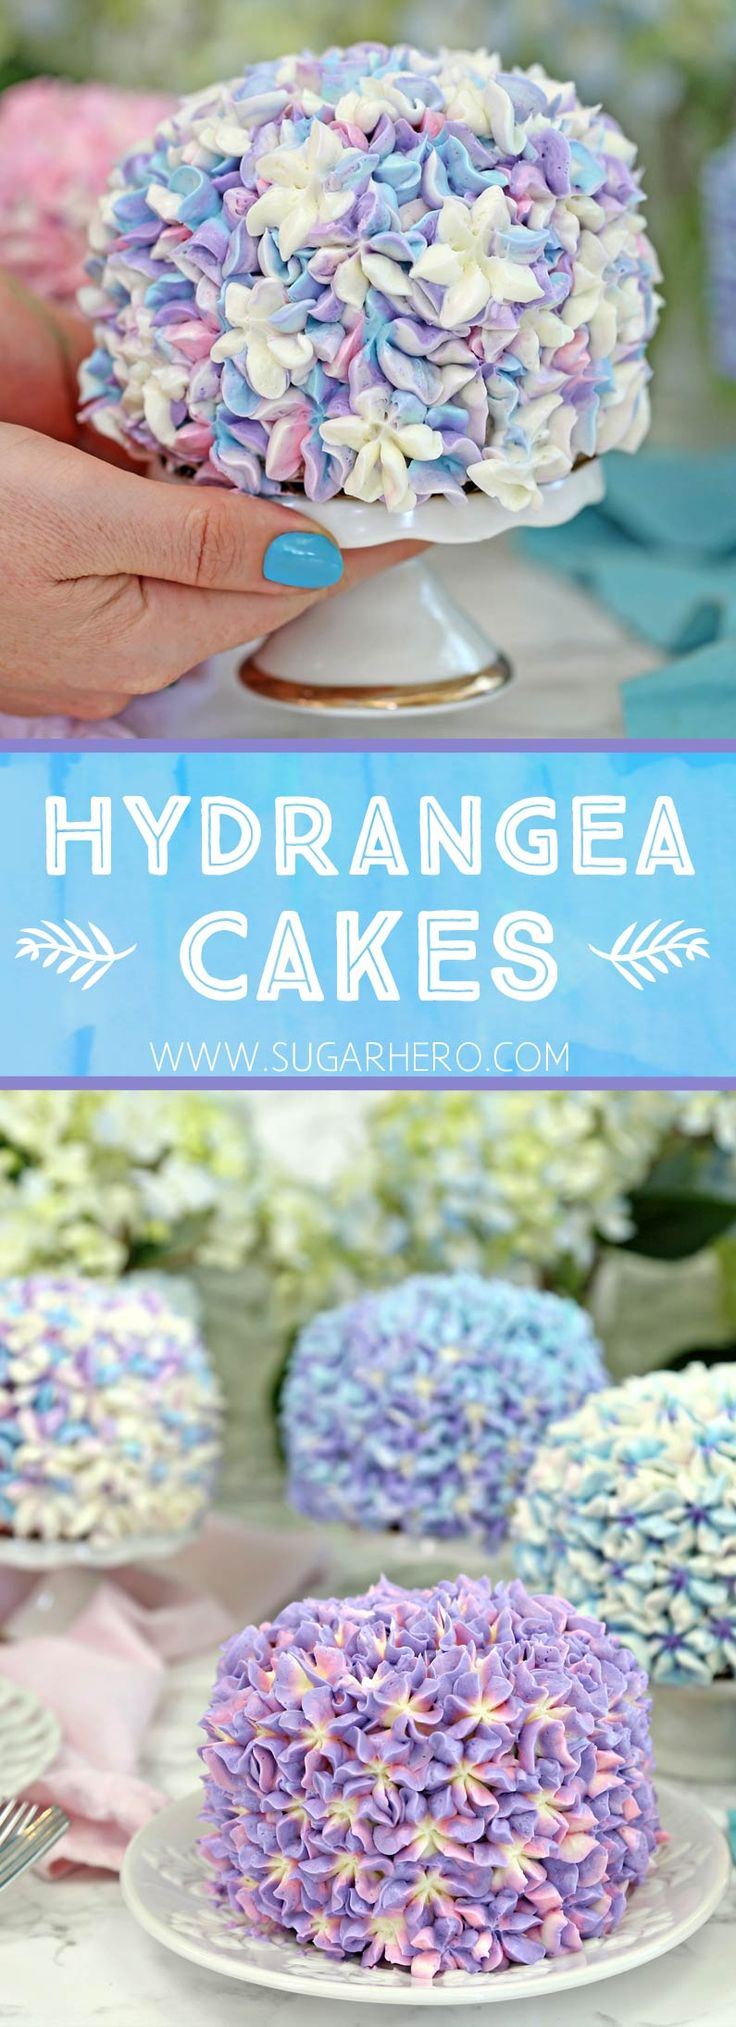 Hydrangea Cakes - gorgeous mini cakes that look like hydrangeas! Perfect for spring parties or showers | From SugarHero.com (Diy Art Large)